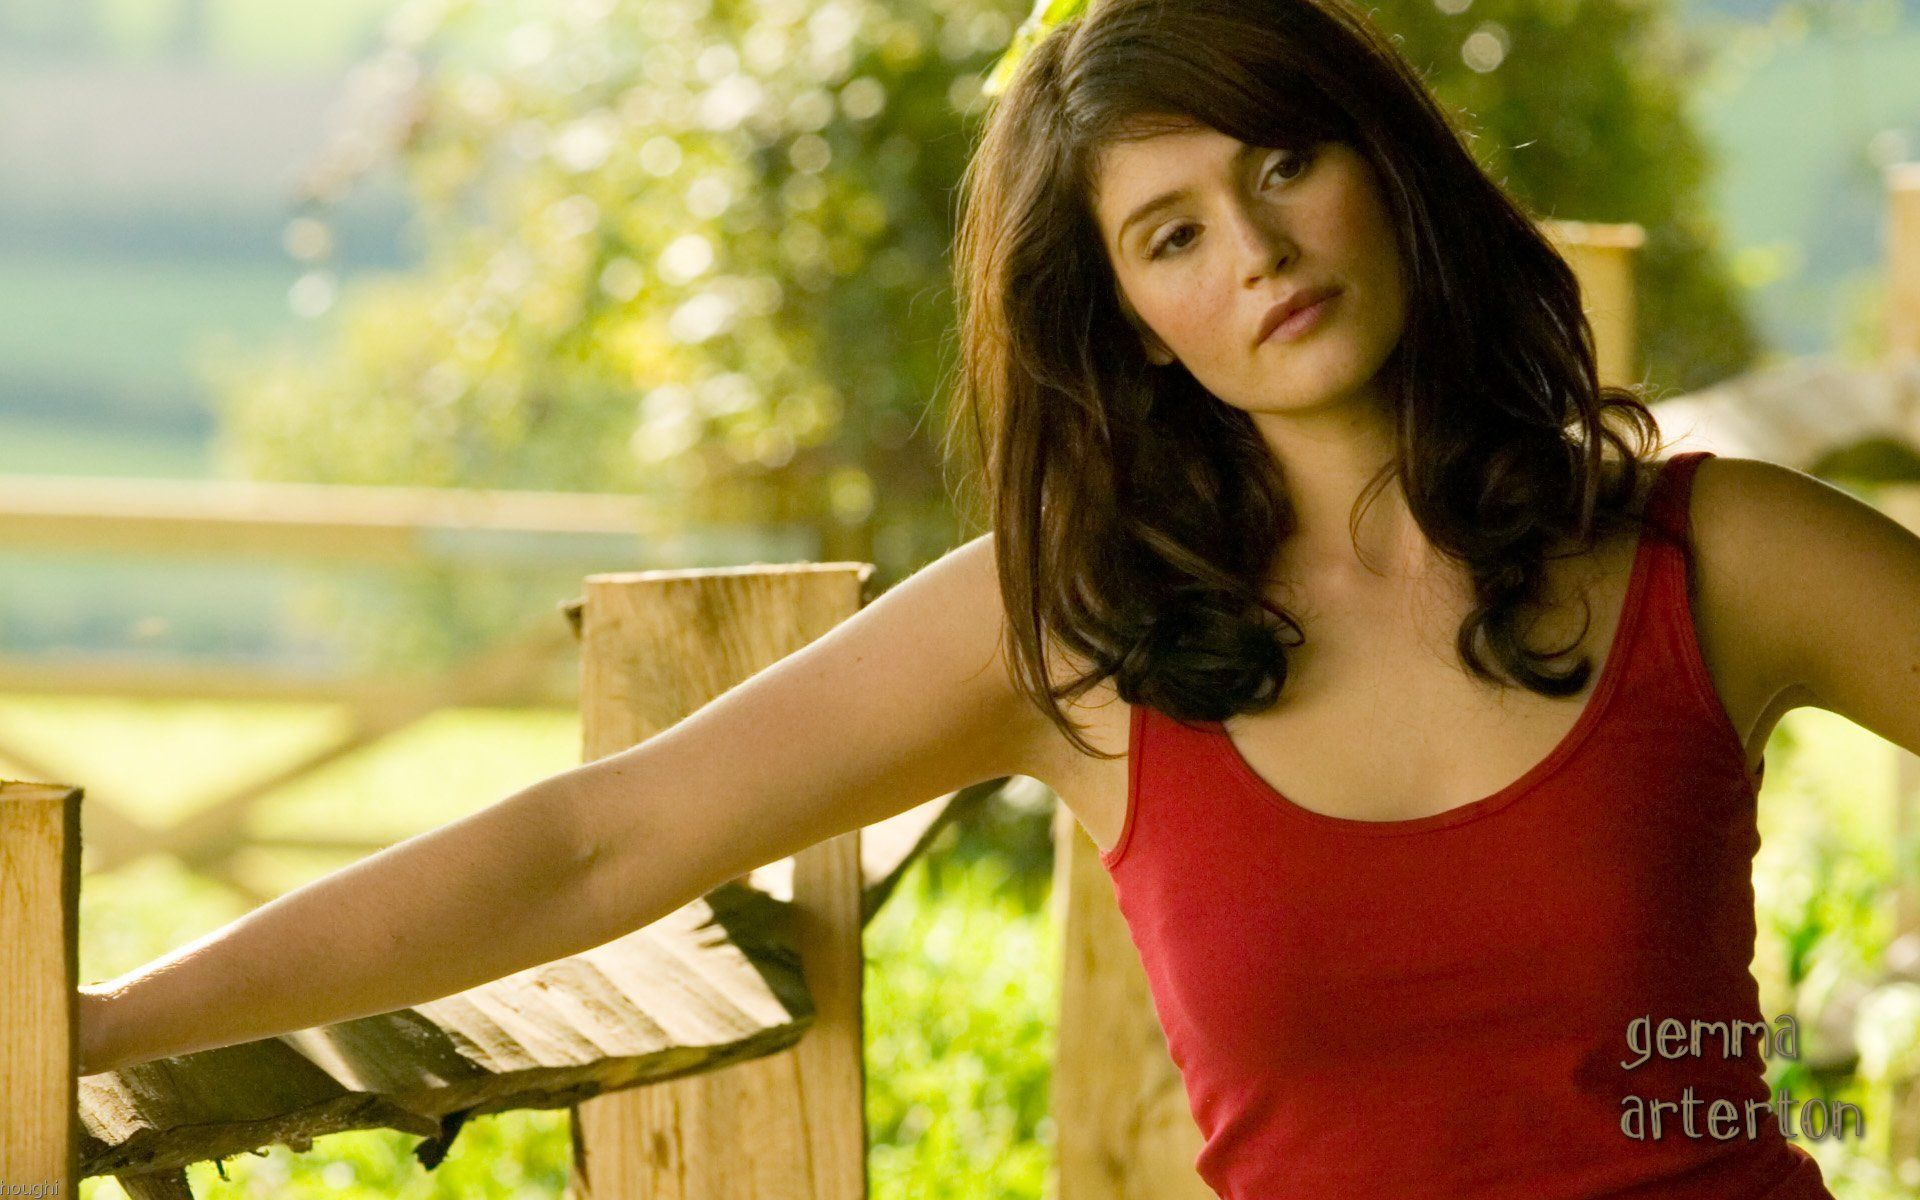 Gemma Arterton Full hd wallpapers